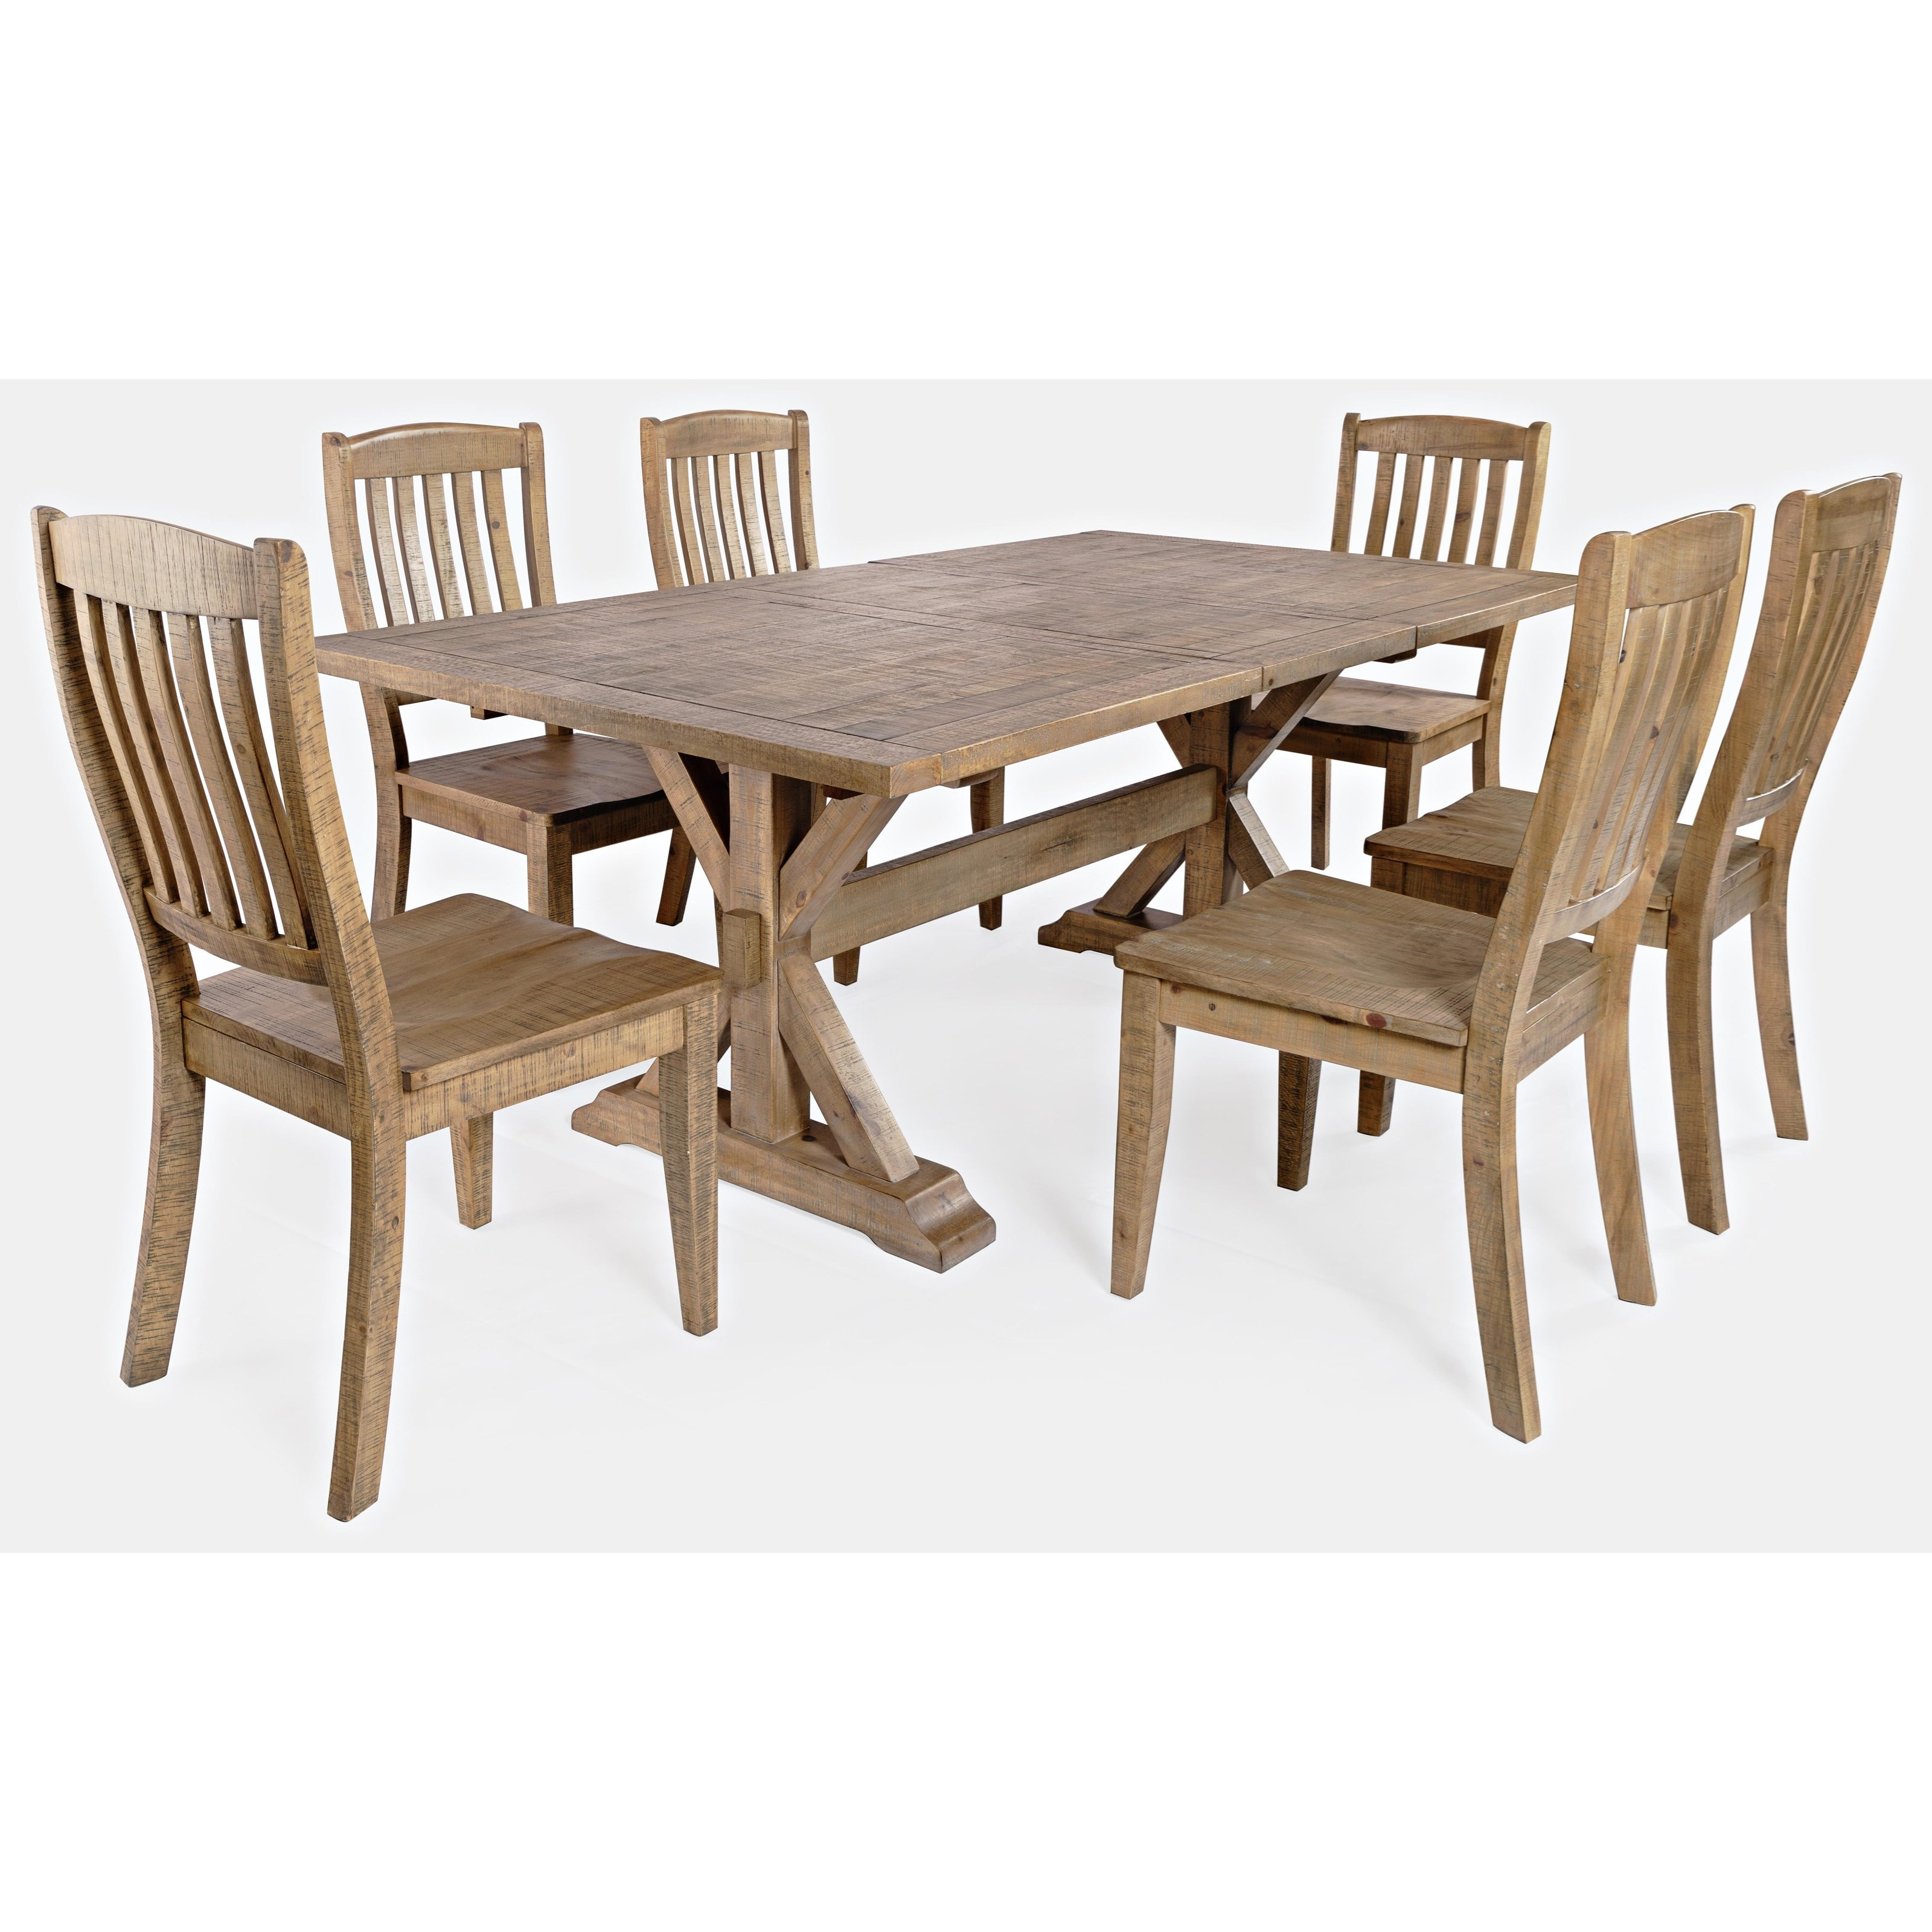 Carlyle Crossing 7-Piece Dining table and Chair Set by Jofran at Zak's Home